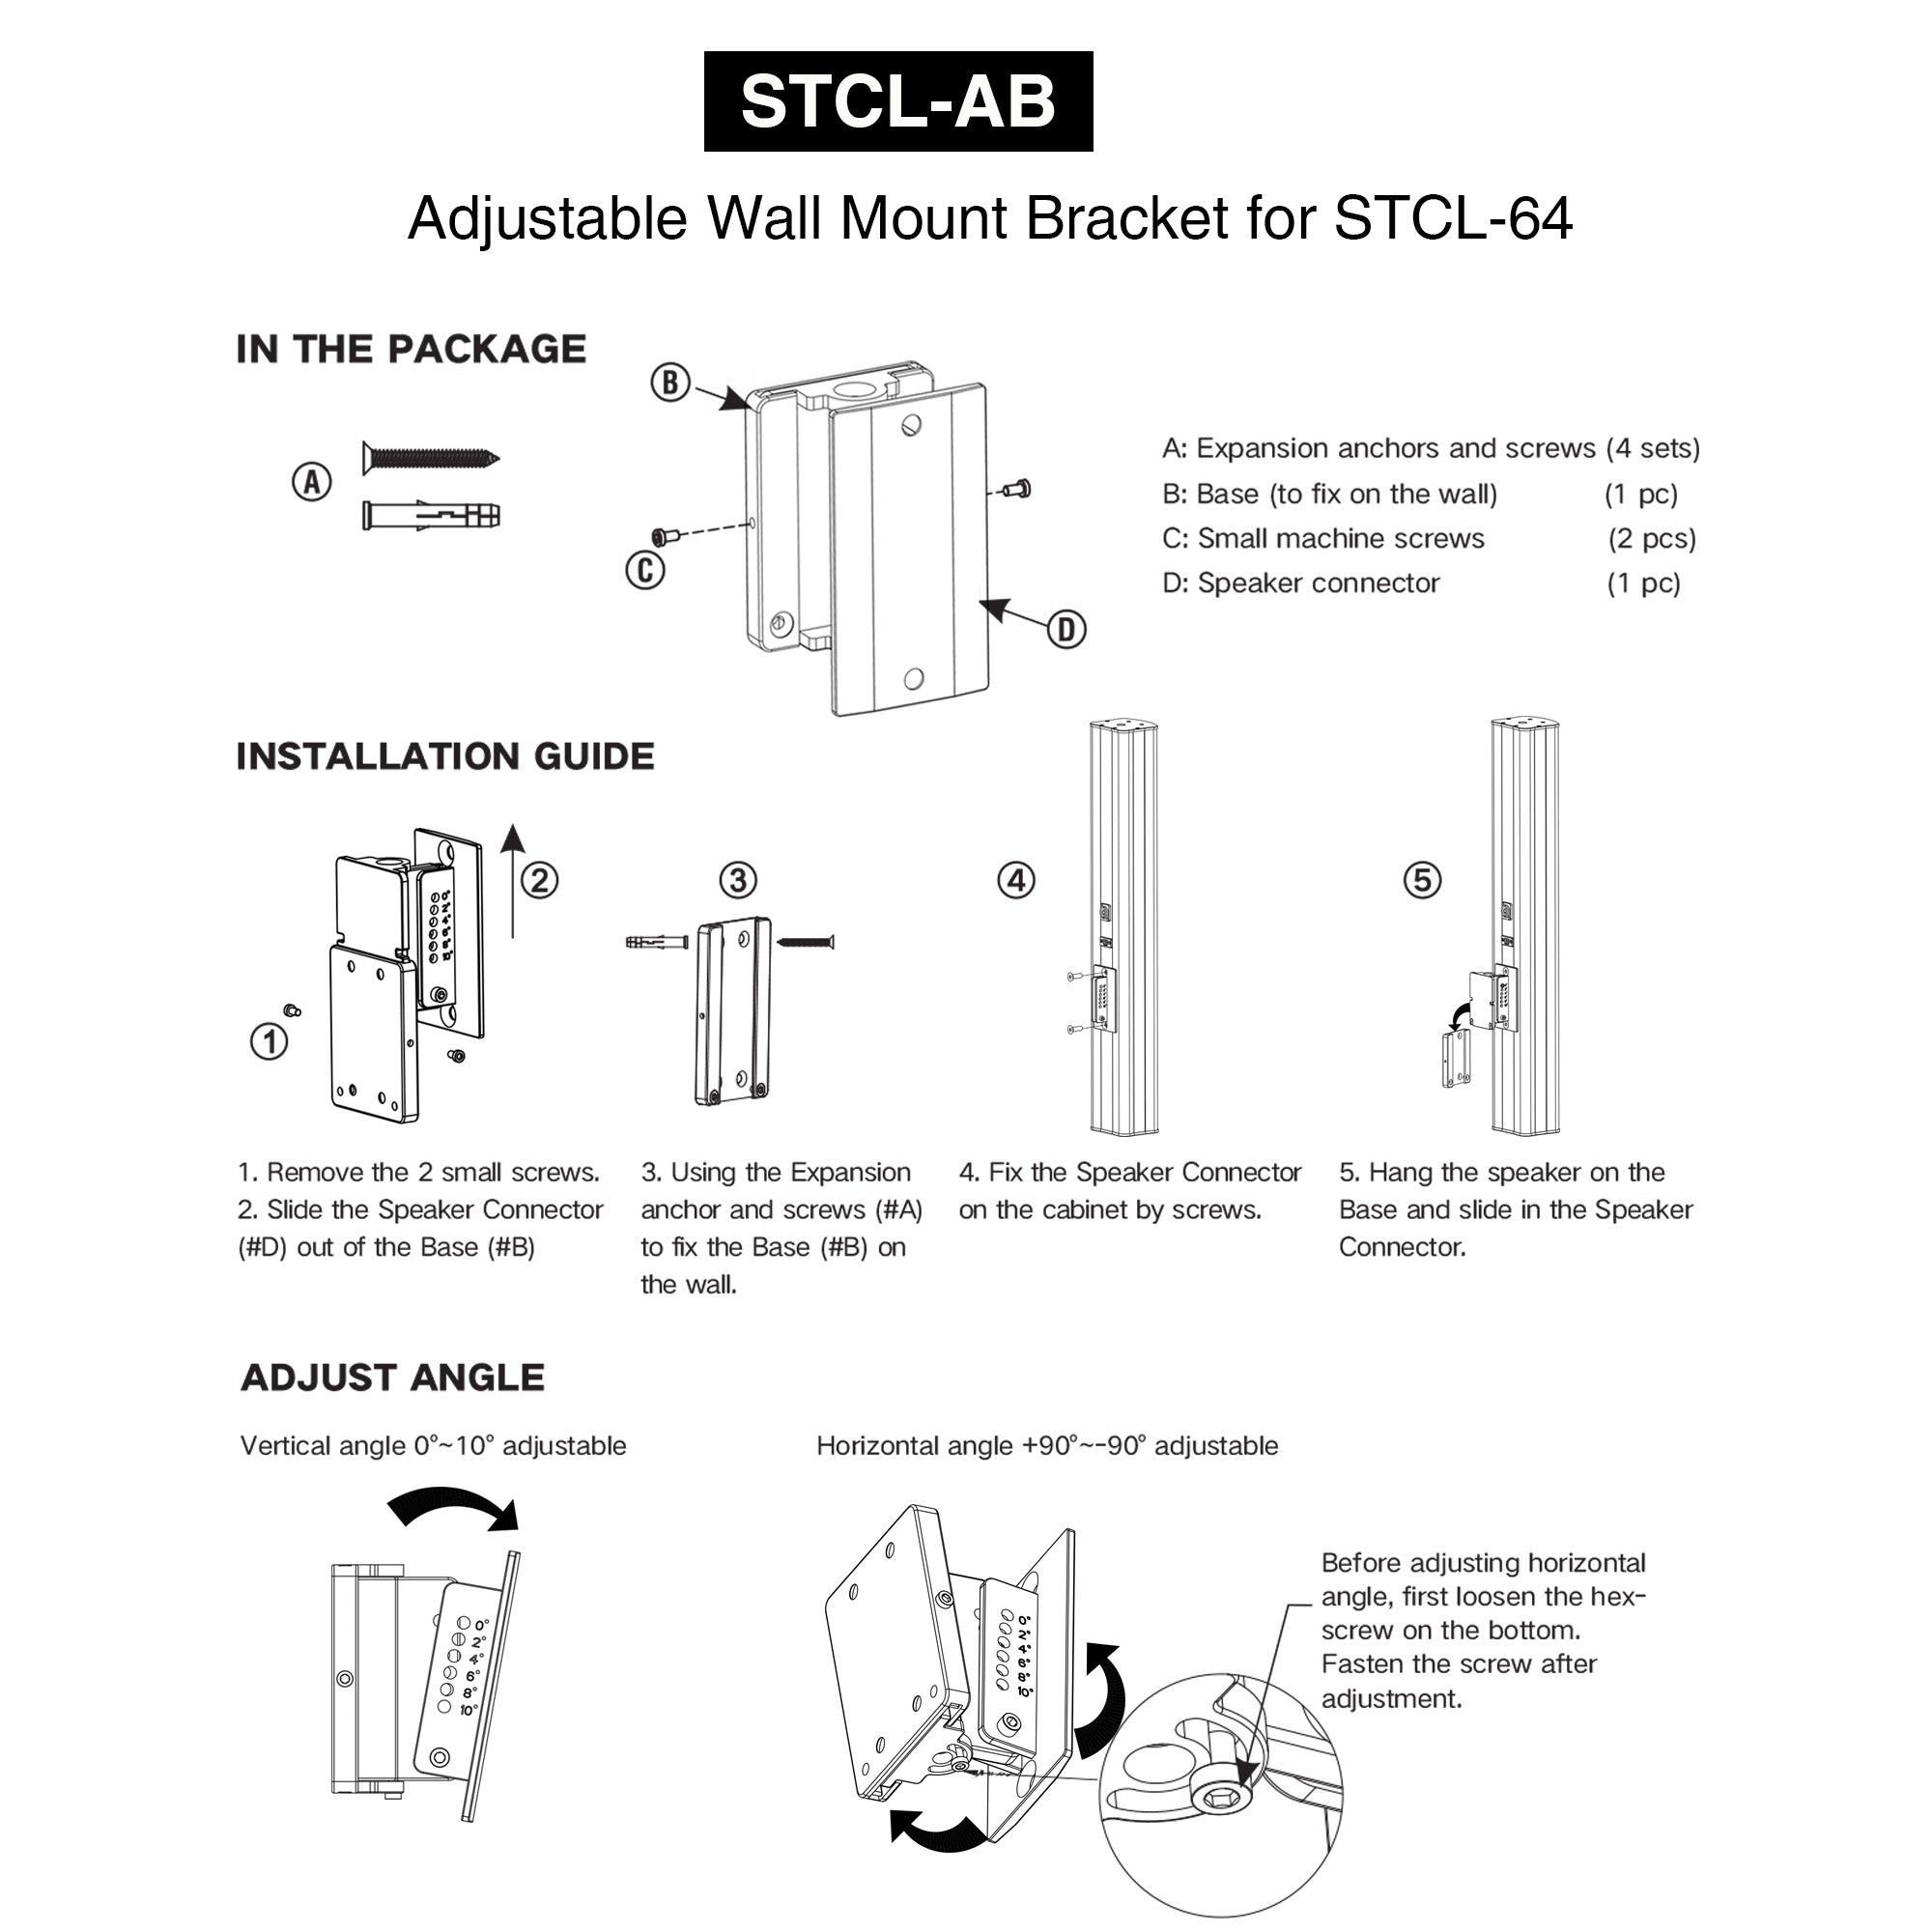 Sound Town STCL-AB Speaker Wall Mount Bracket with Angle Adjustment for STCL-64 Column Speaker - Accessories in the Package and Installation Guide, How to install and adjust the angle, Adjustment instructions and directions